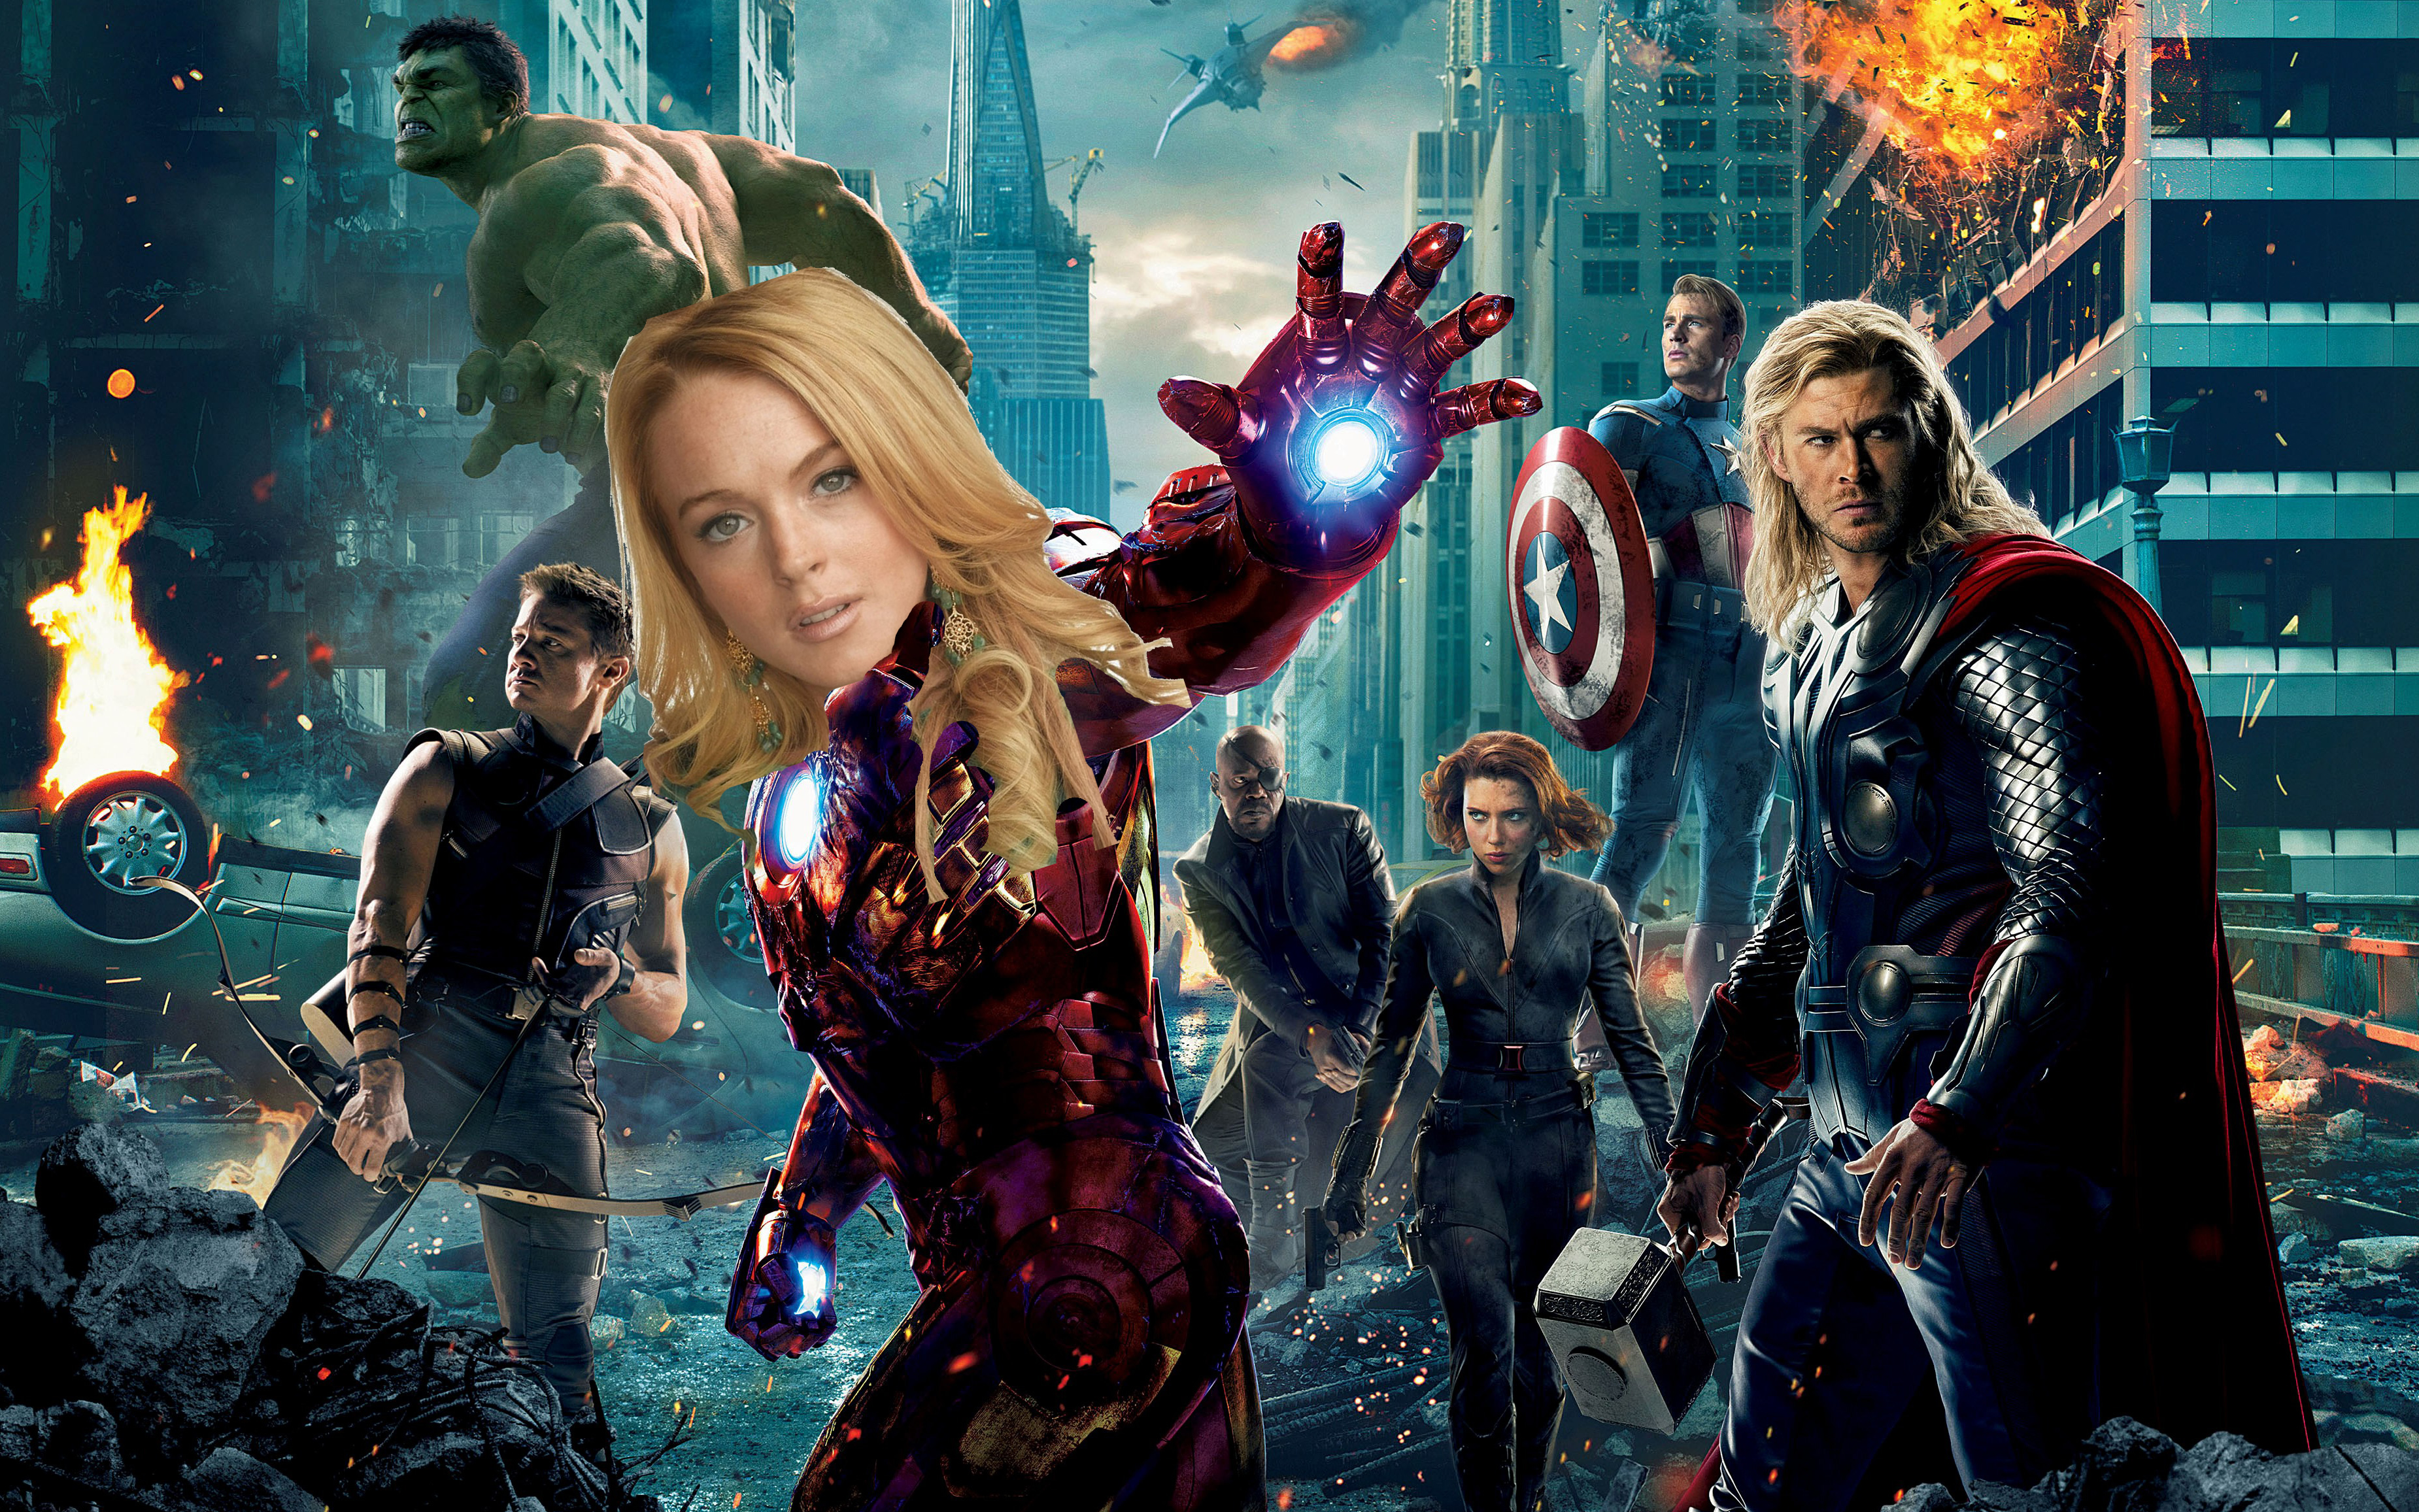 Avengers with Lohan